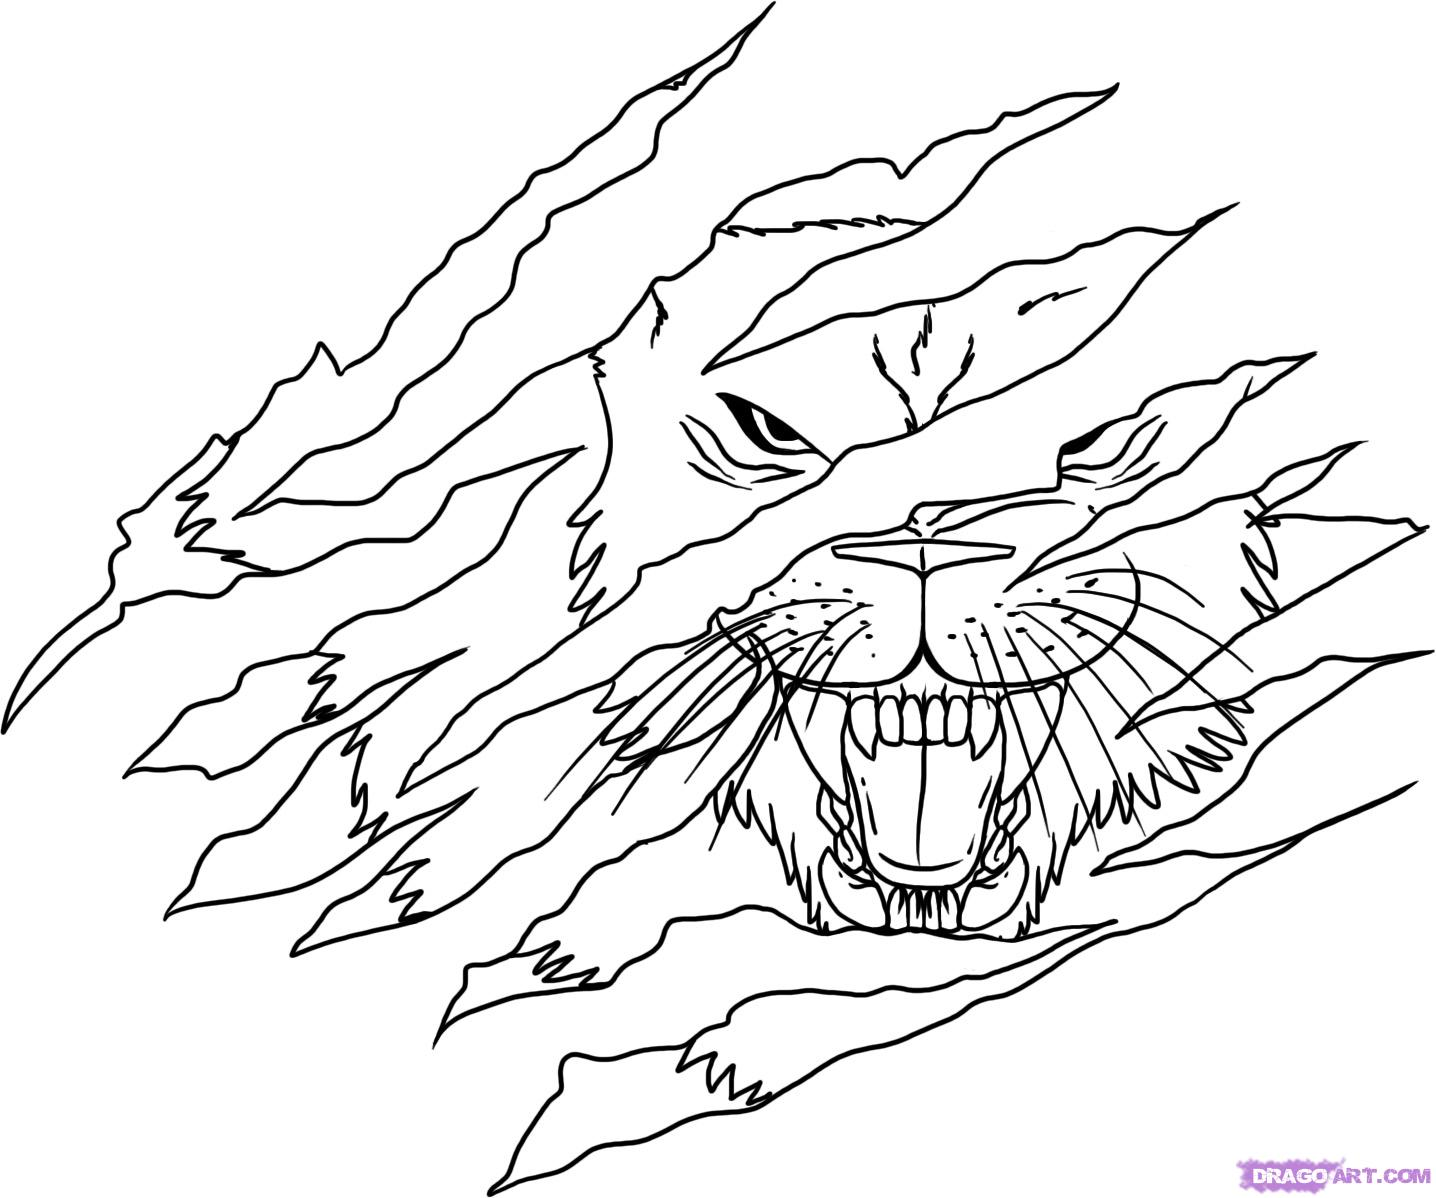 1436x1198 How To Draw A Tattoo Lion Tattoo Lion Step 13 Lion Line Drawing